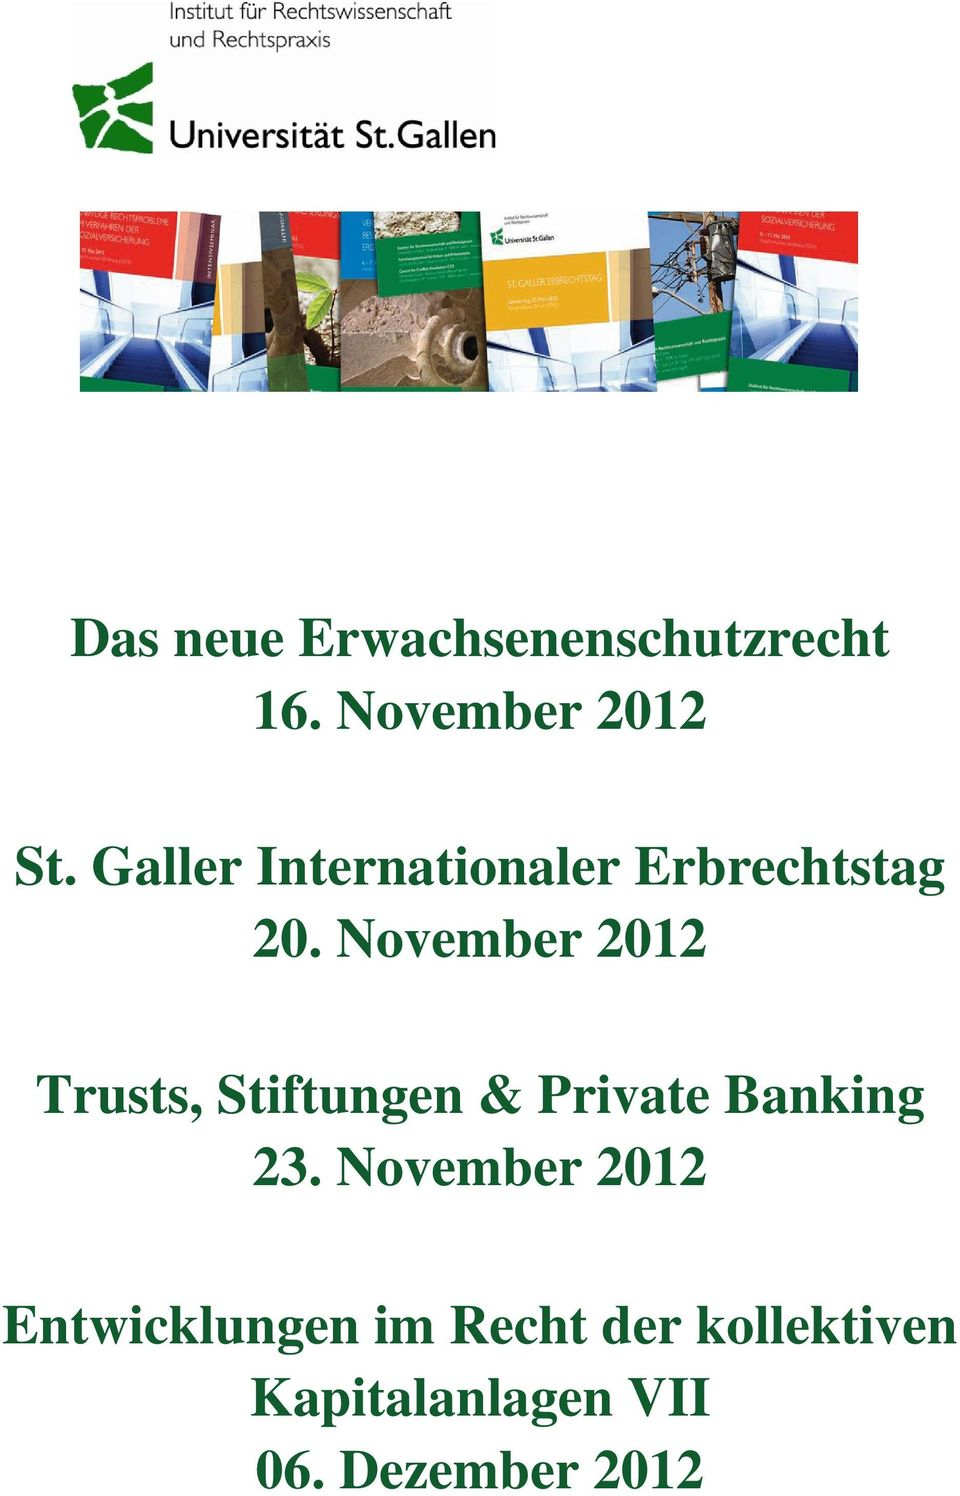 November 2012 Trusts, Stiftungen & Private Banking 23.